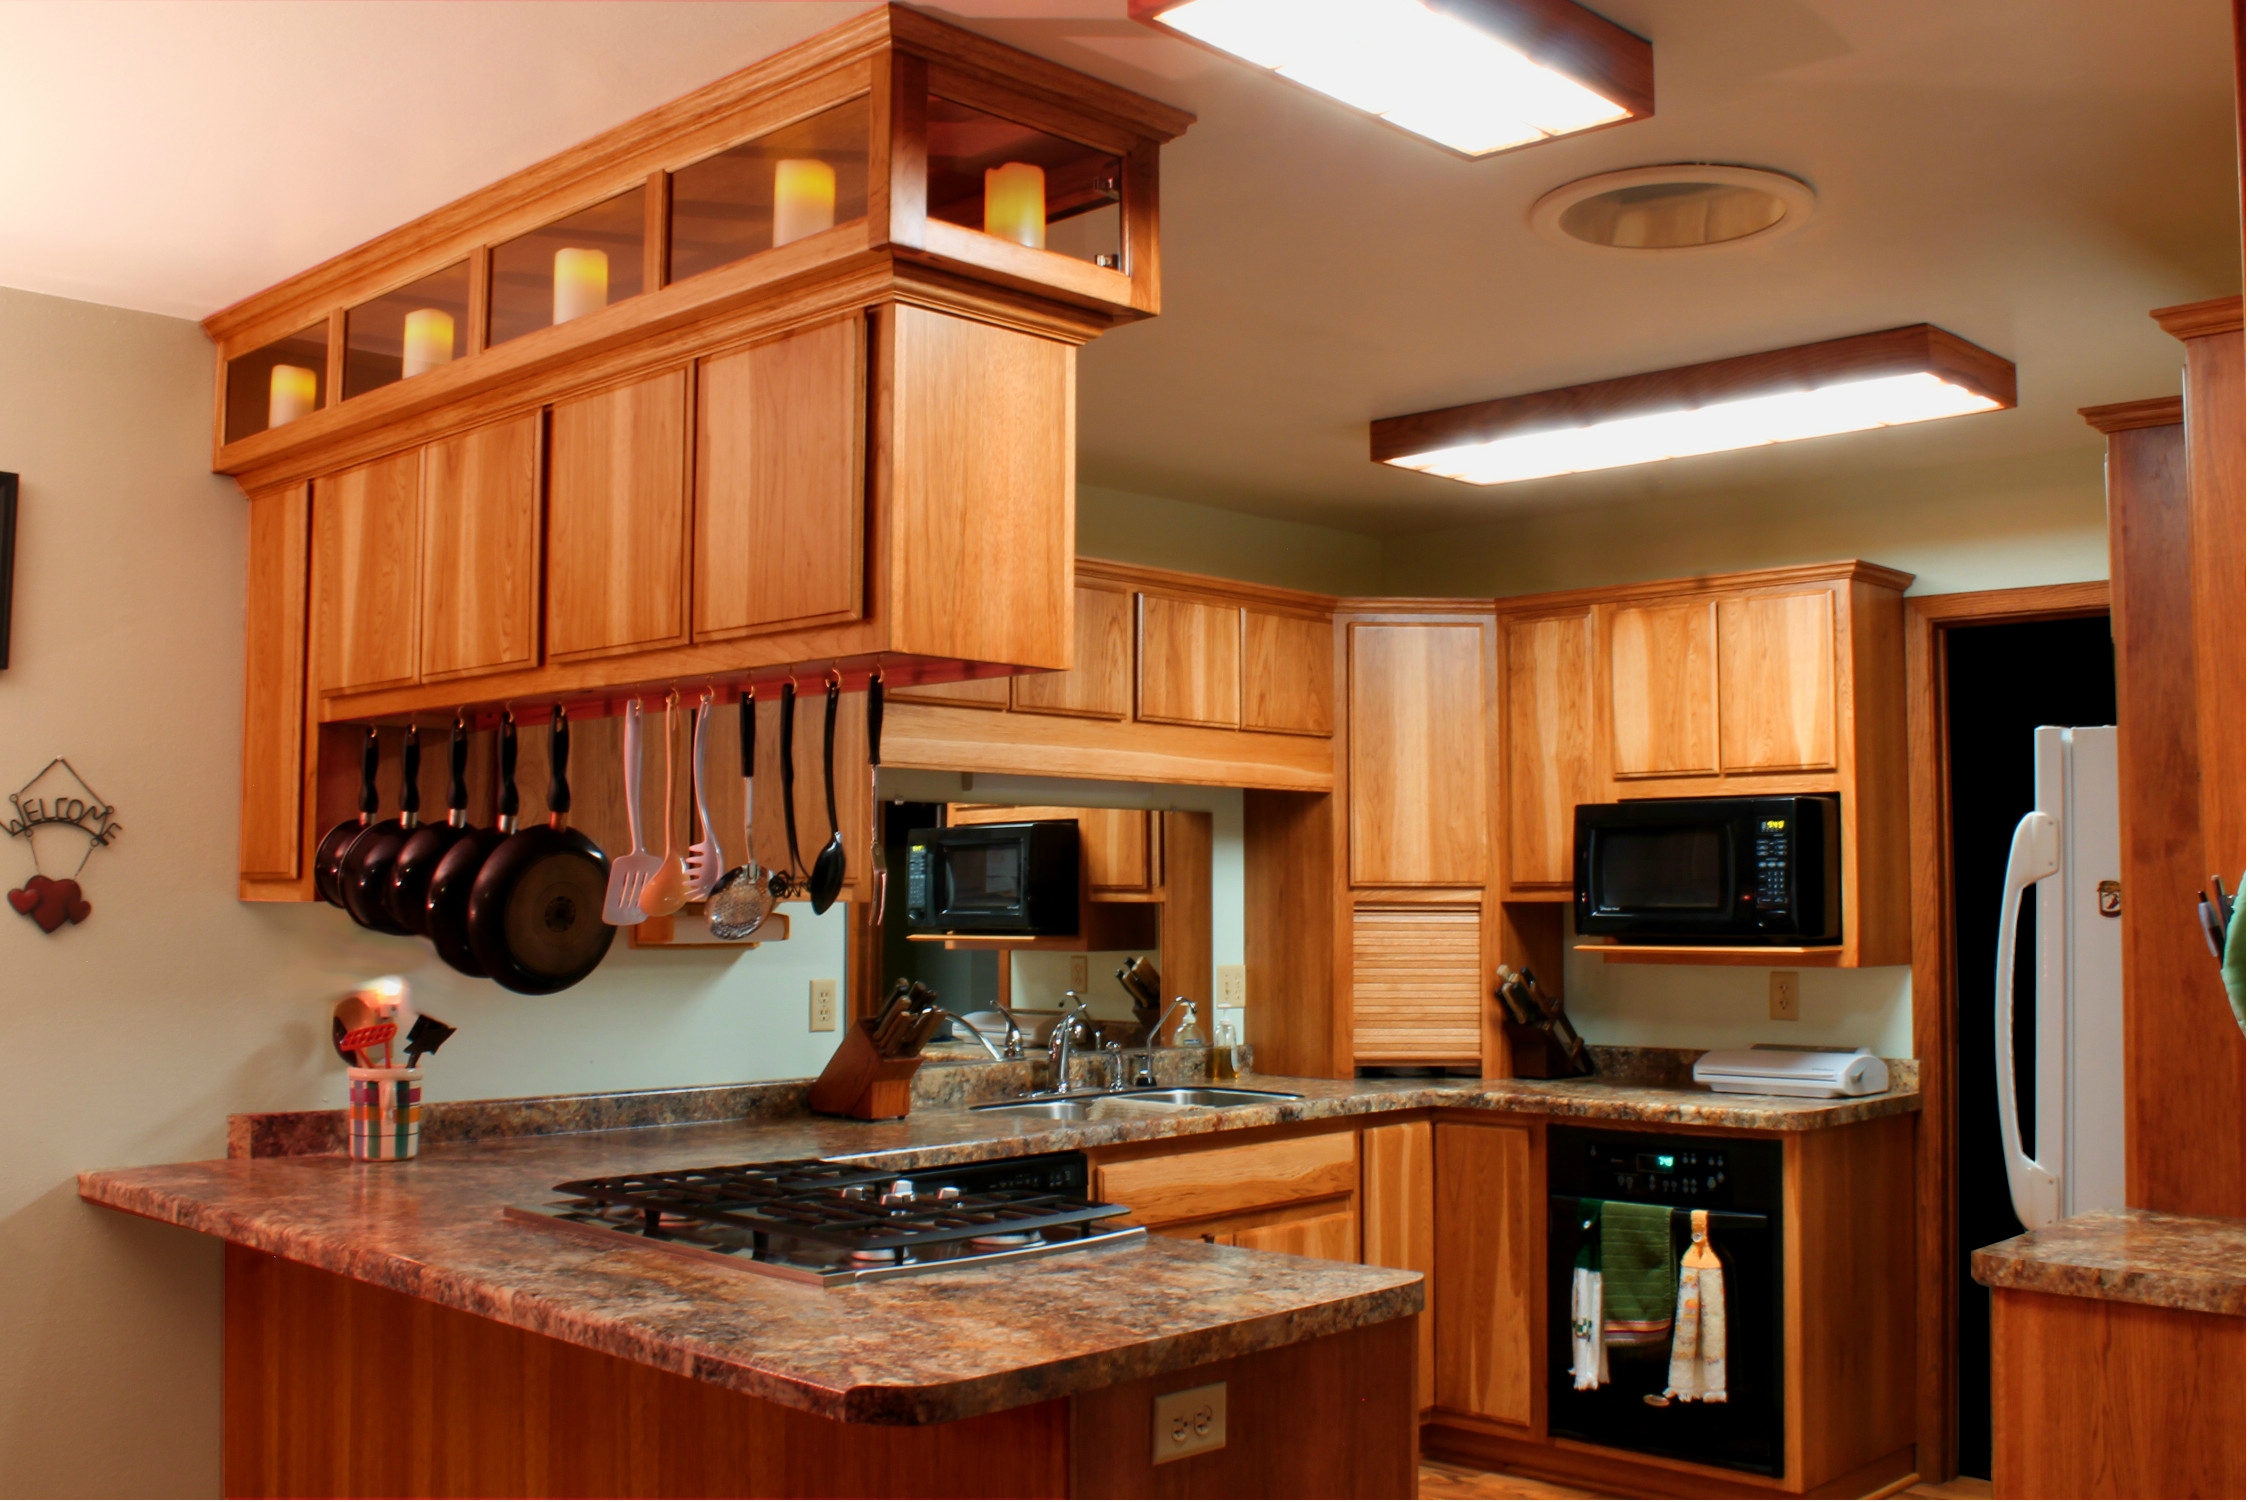 hickory kitchen this kitchen custom built in hickory features - Built In Cabinets For Kitchen